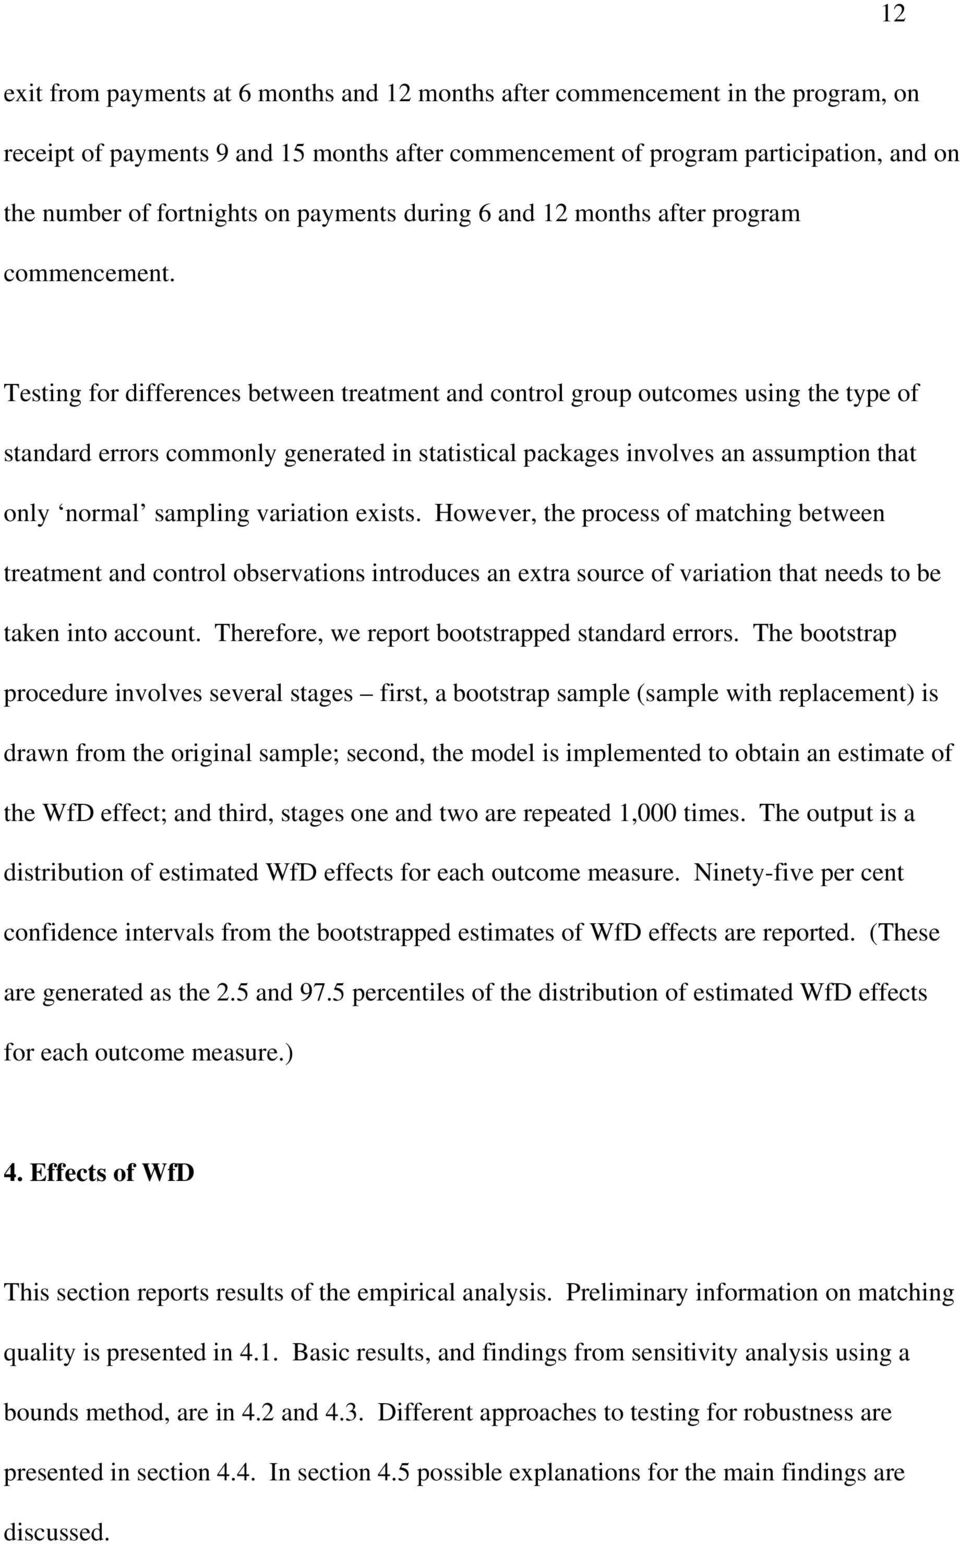 Testing for differences between treatment and control group outcomes using the type of standard errors commonly generated in statistical packages involves an assumption that only normal sampling